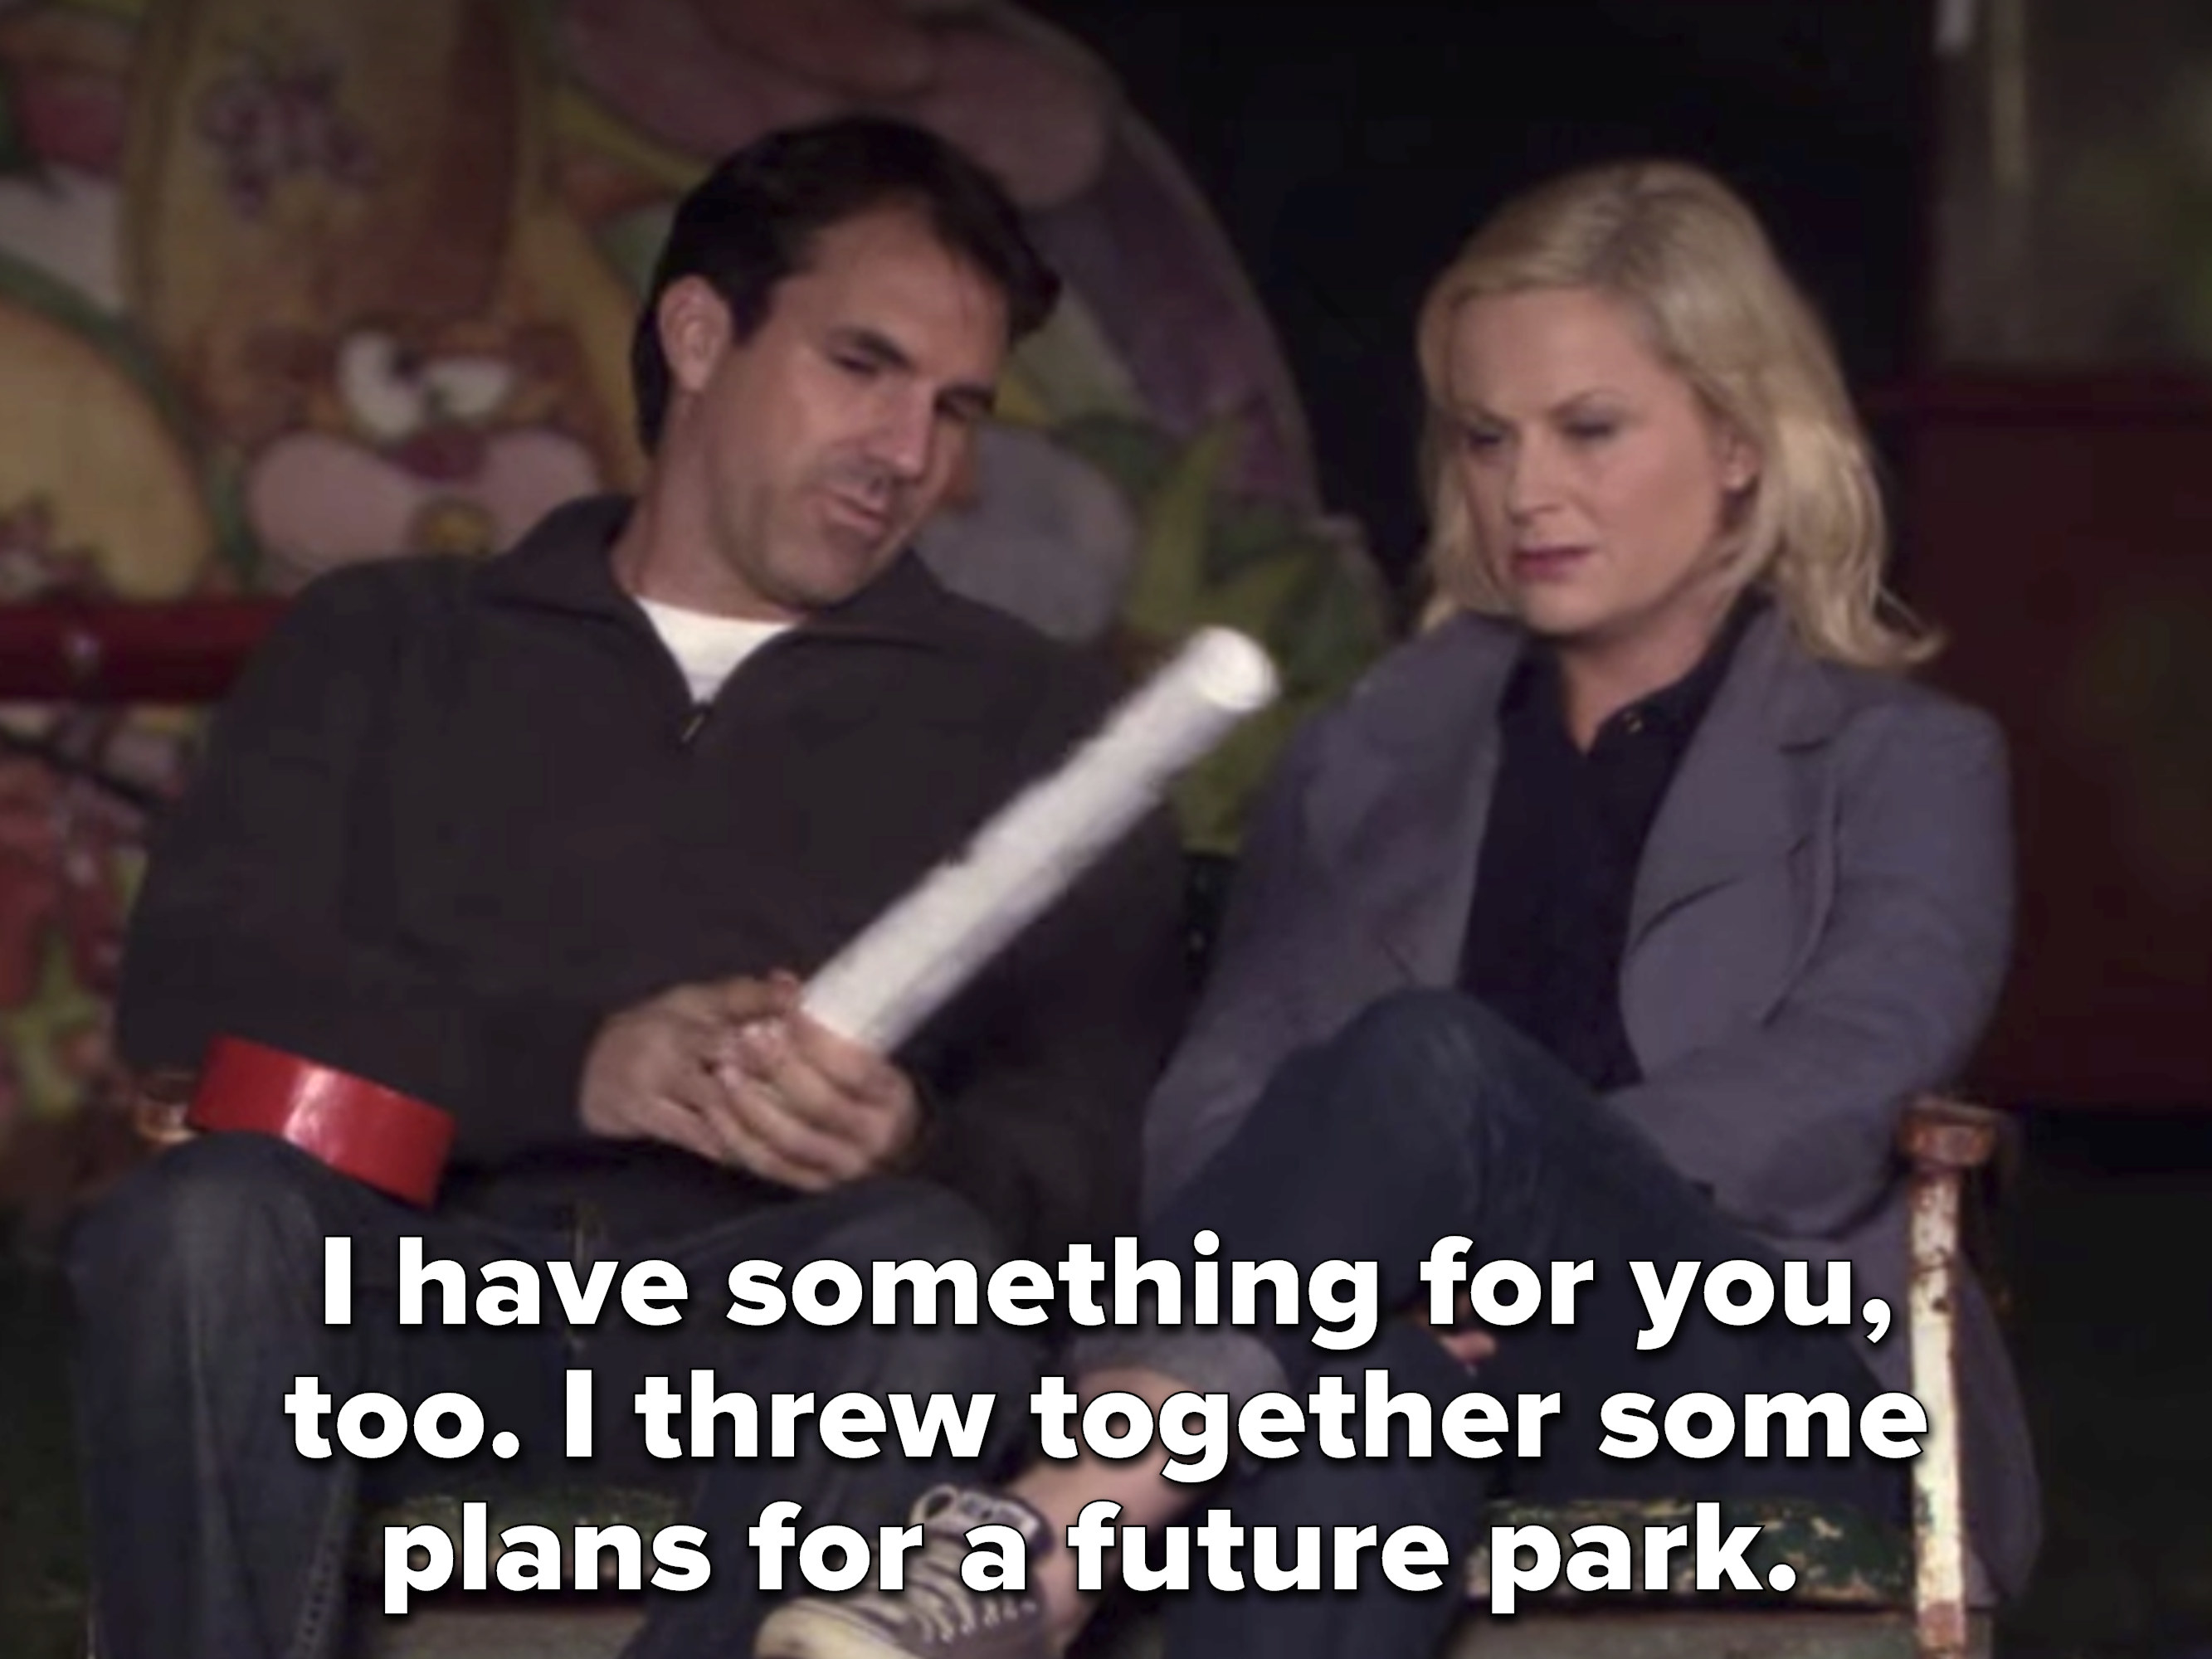 Mark gives Leslie his plans for the park before he leaves